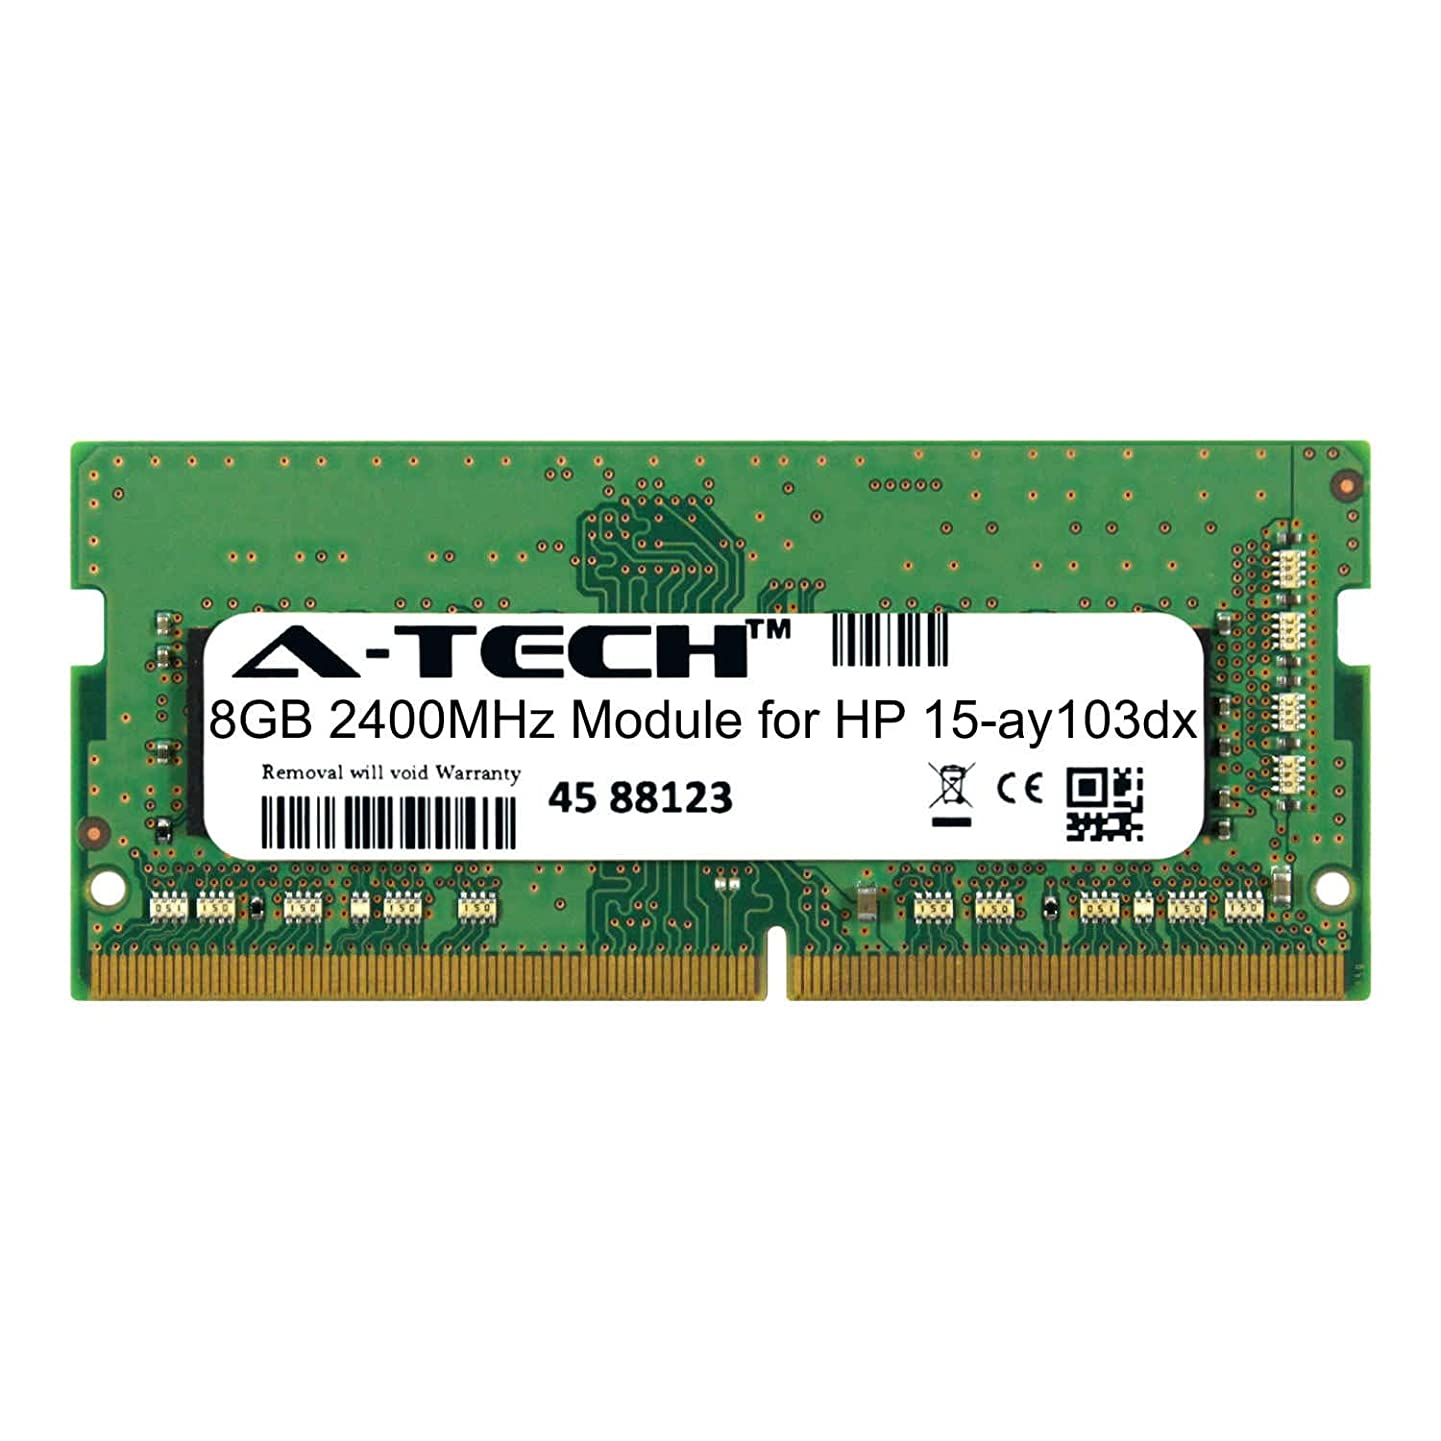 A-Tech 8GB Module for HP 15-ay103dx Laptop & Notebook Compatible DDR4 2400Mhz Memory Ram (ATMS379397A25827X1)